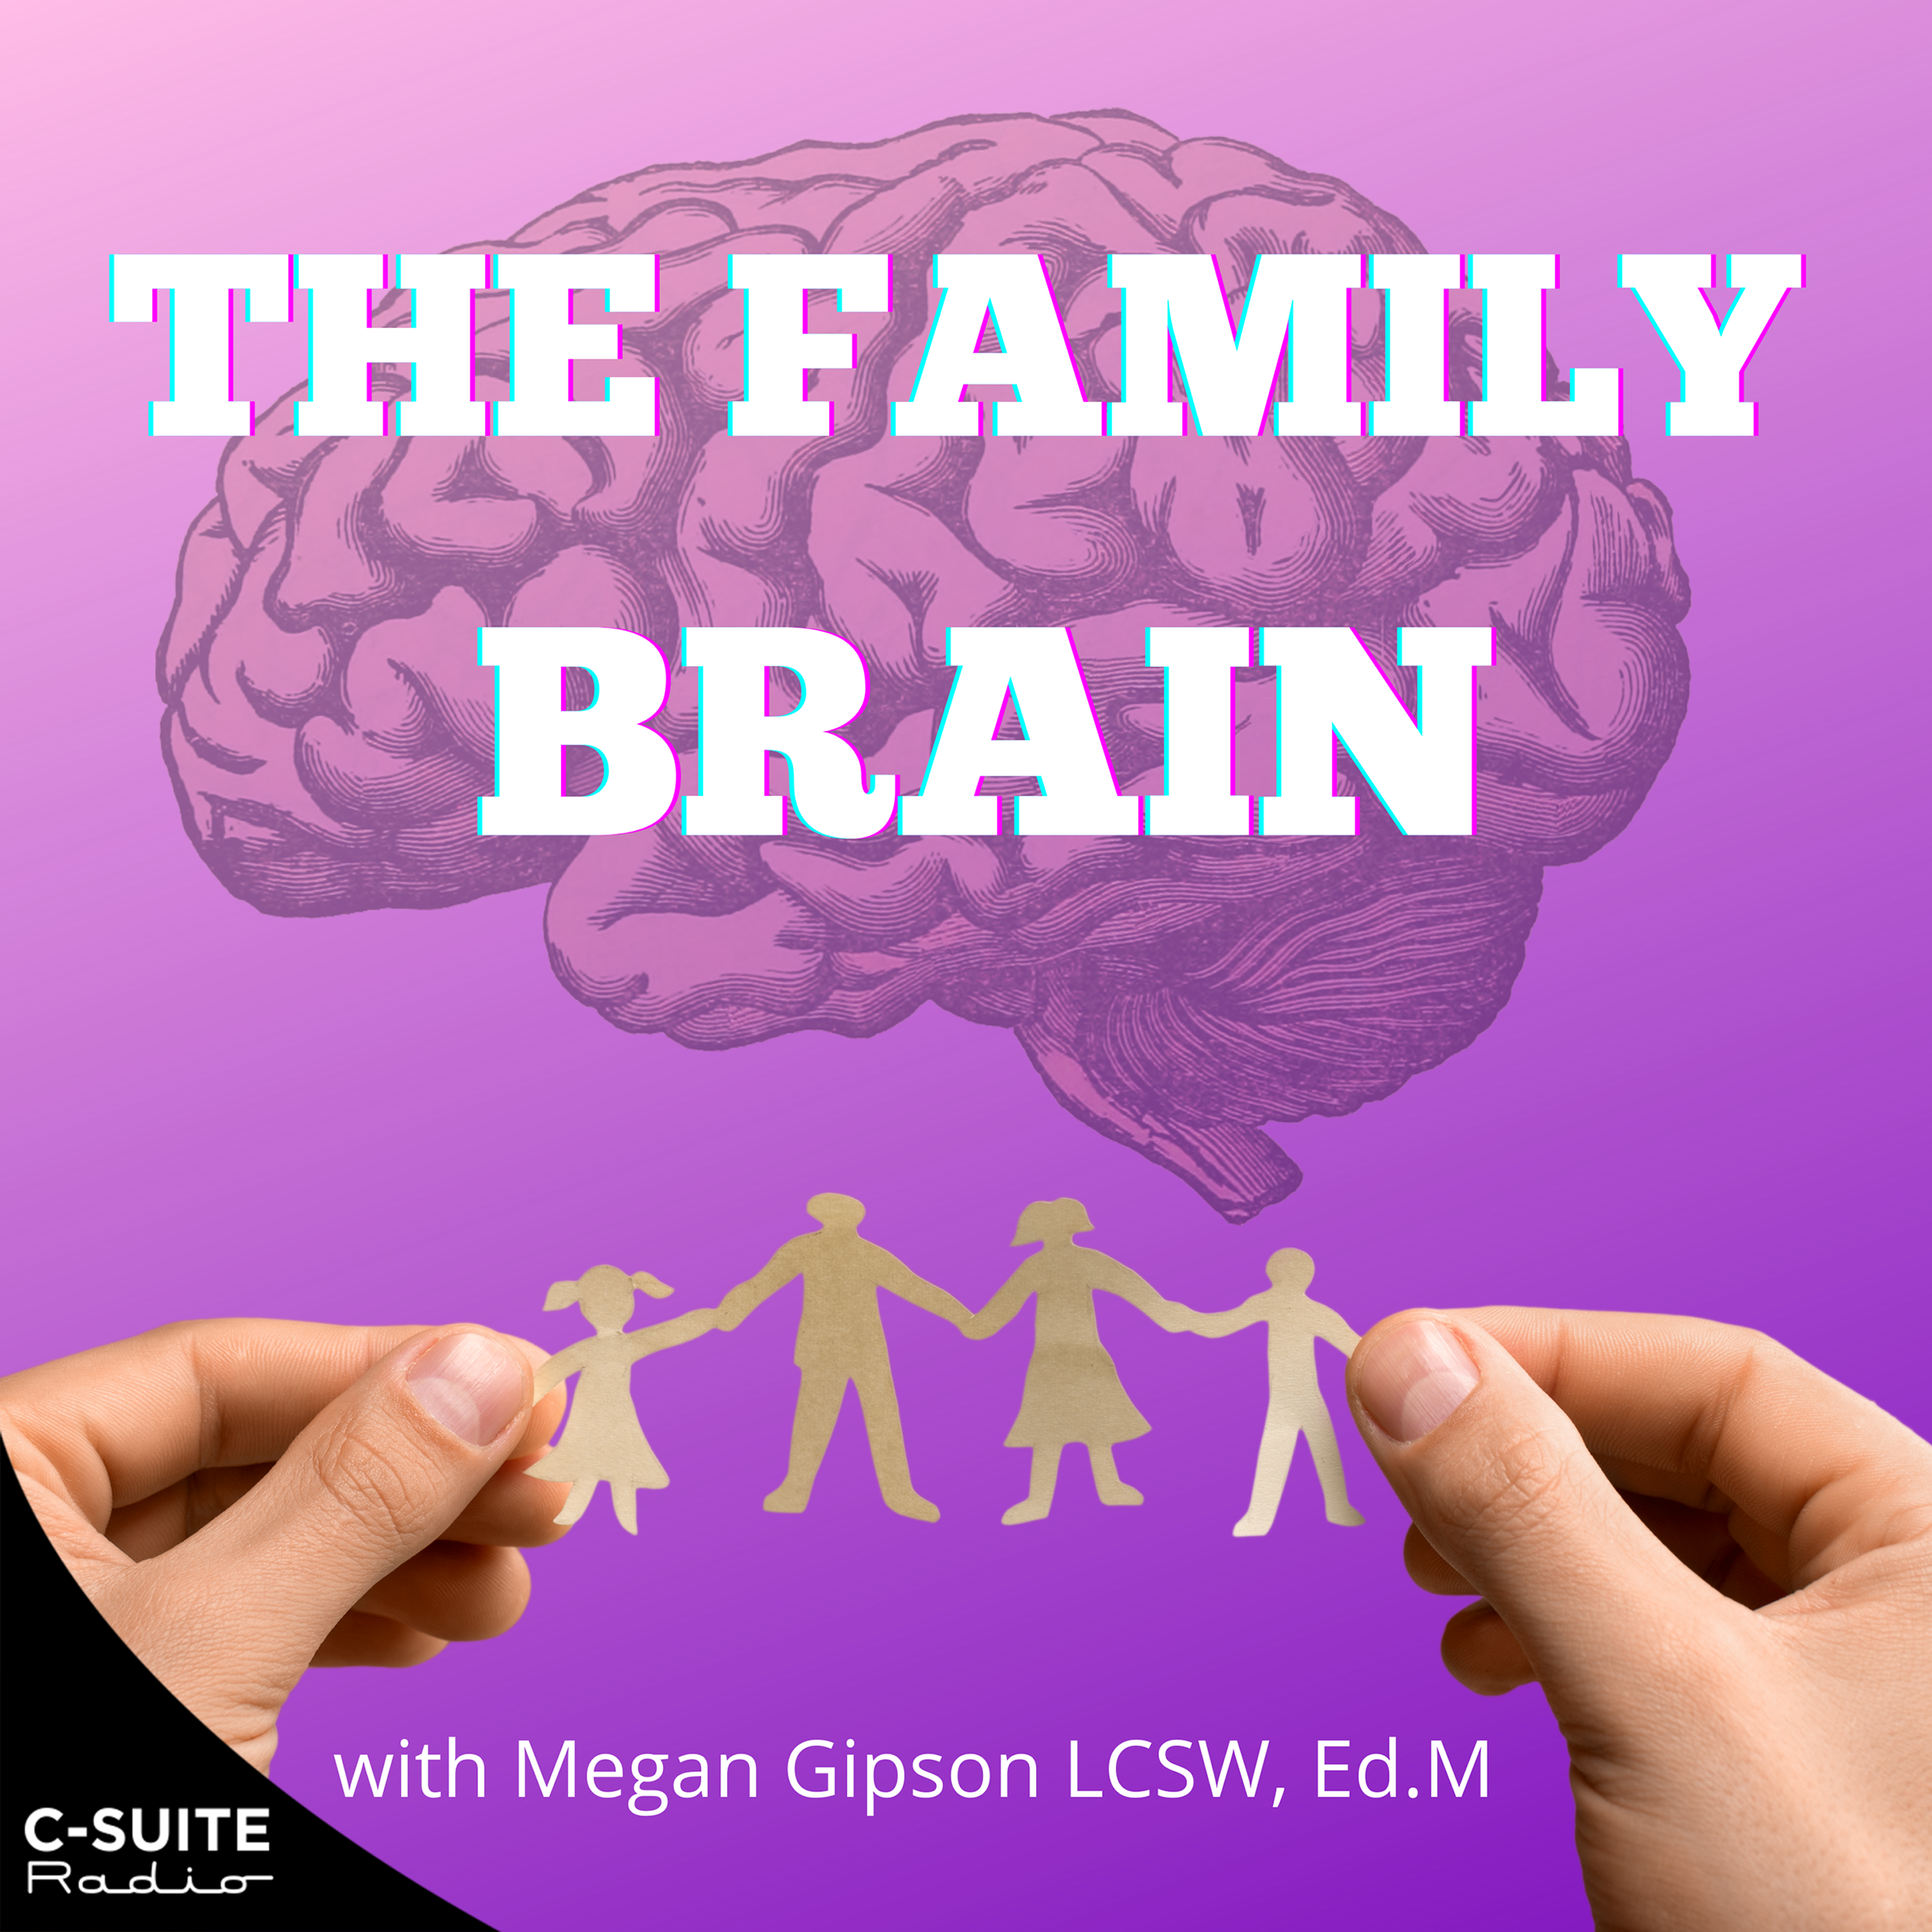 The Family Brain with Megan Gipson, LCSW, Ed.M